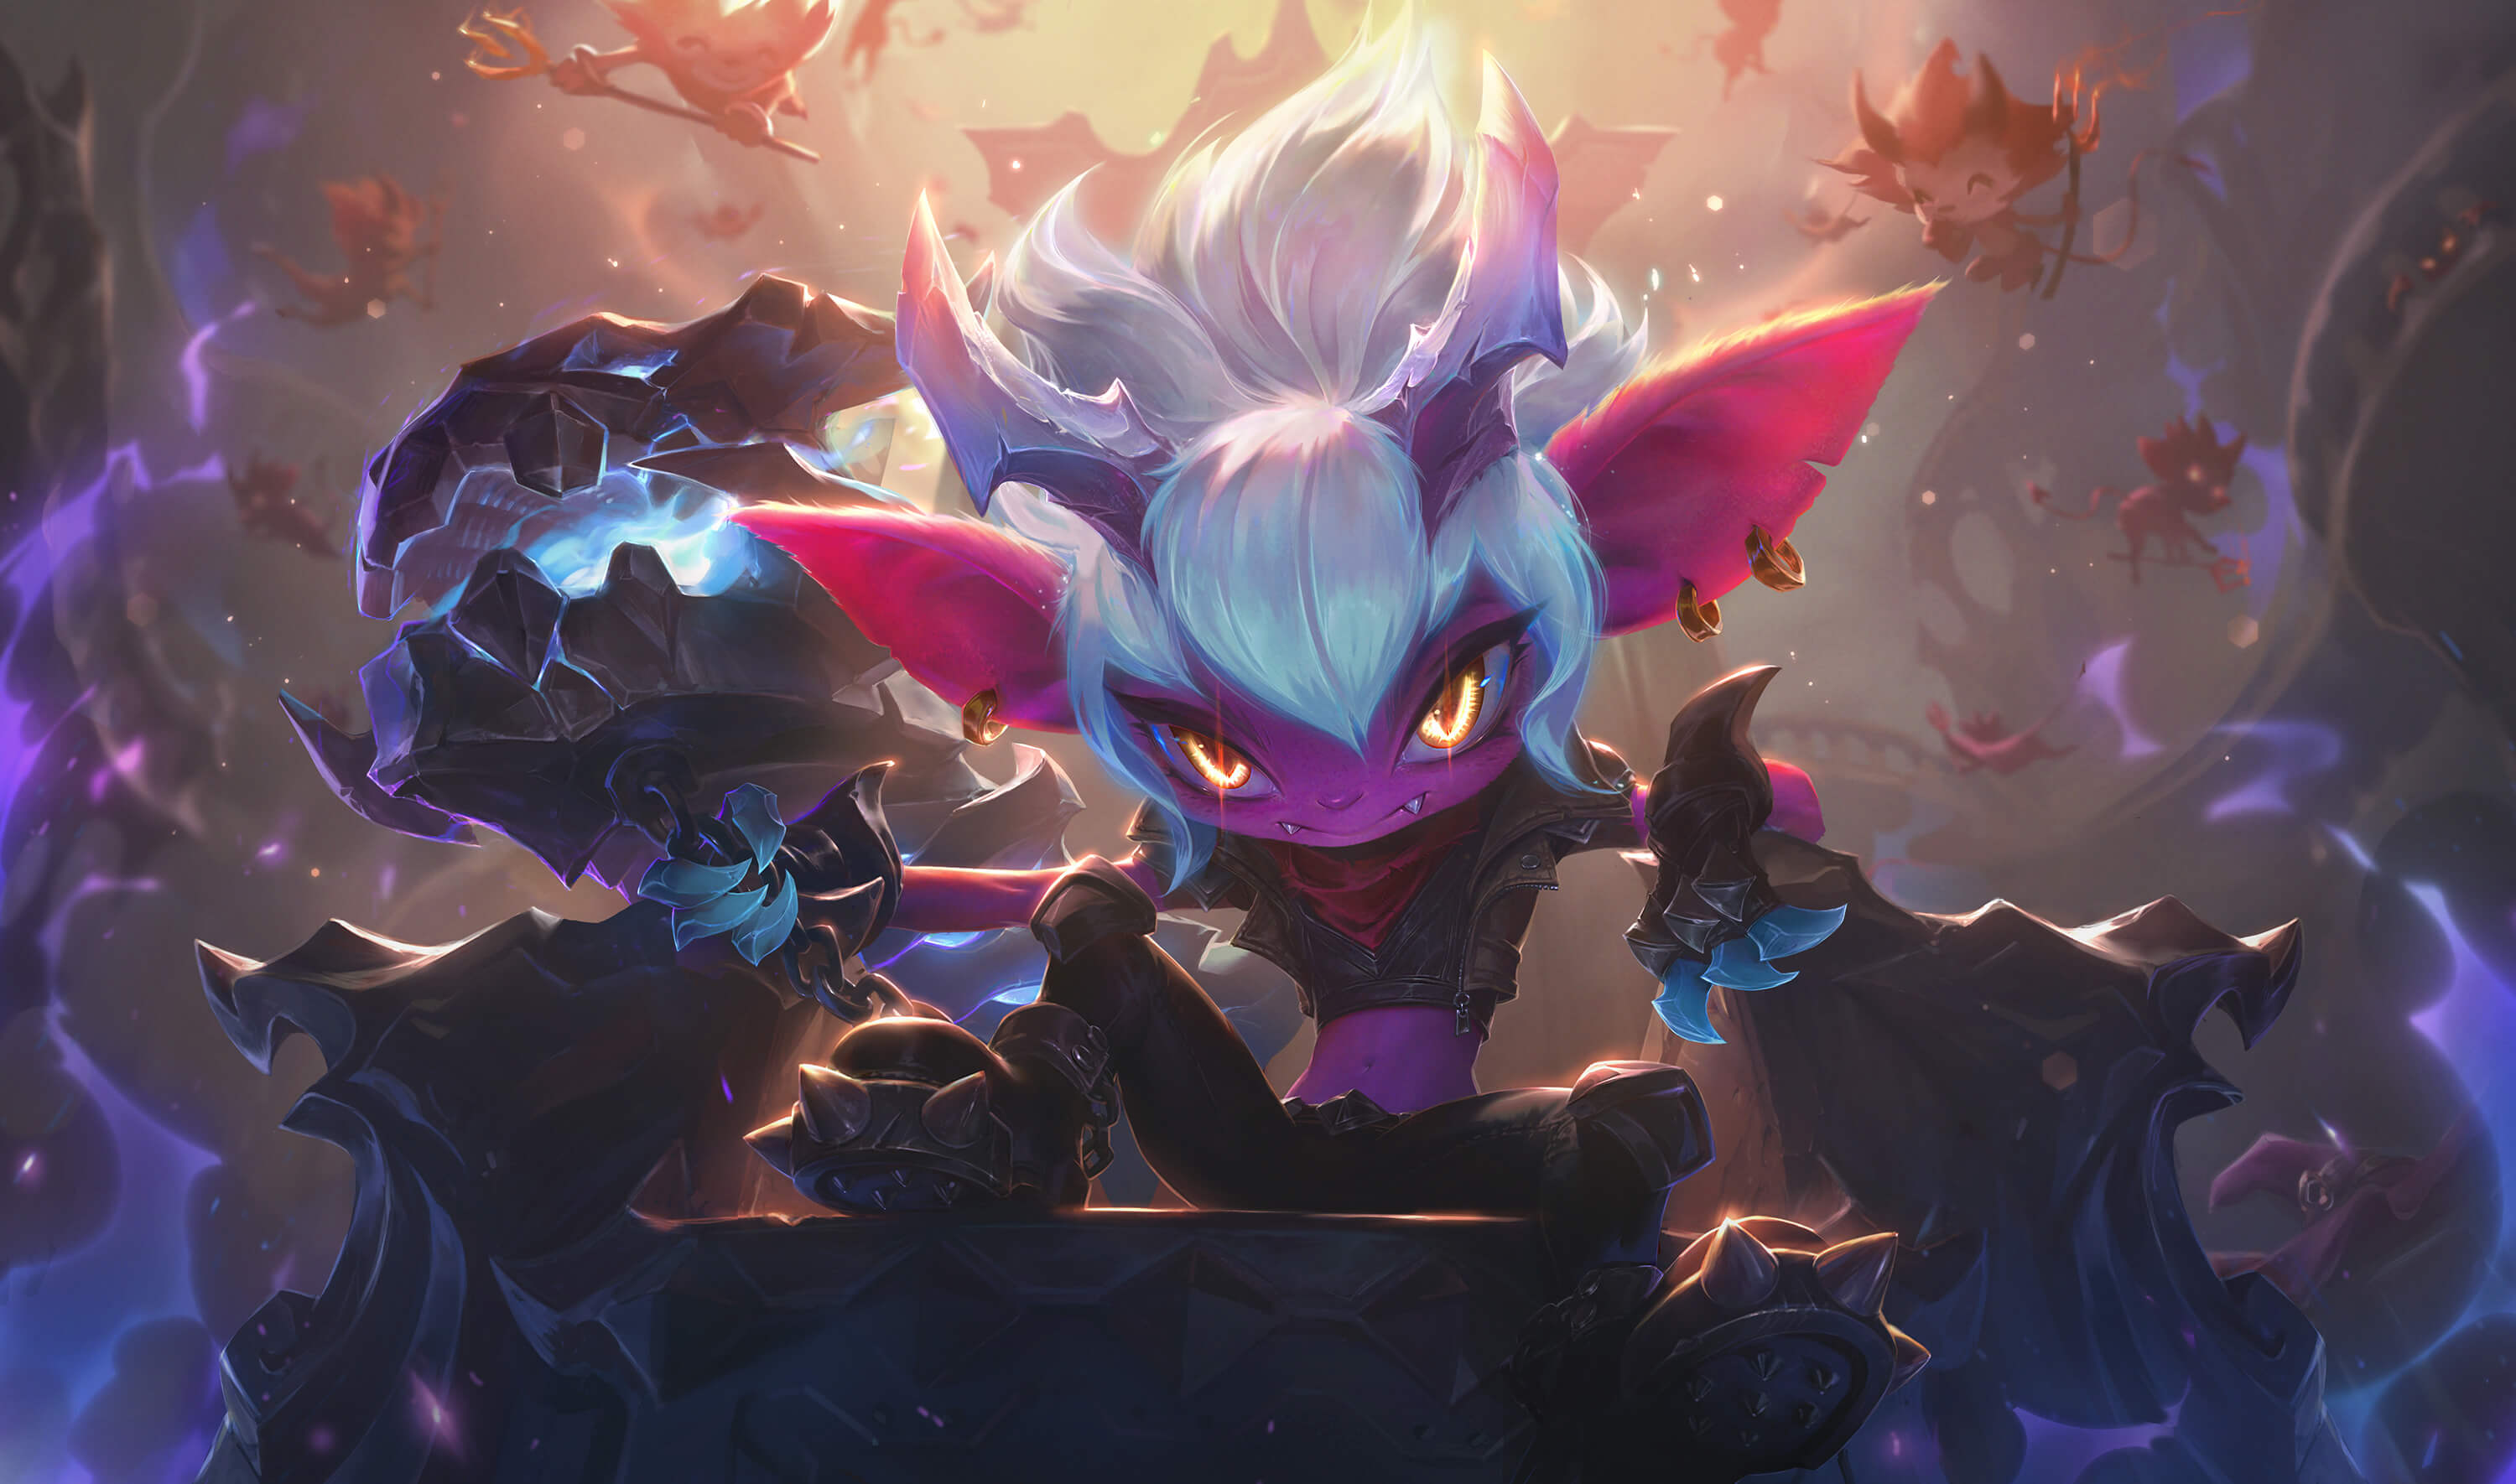 07_Little_Demon_Tristana_Final_Splash_High_Res_selmg3viz26ewpexd56u.jpg - 293.07 kb